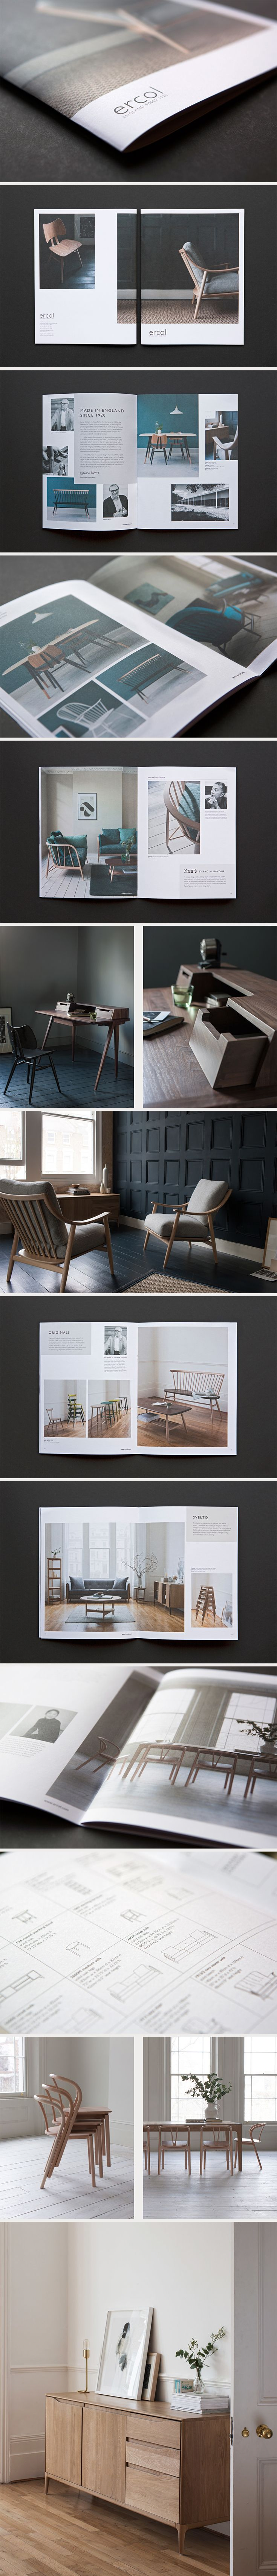 #ercol furniture brochure by reef design #photography #design #interiors #artdirection @ercol